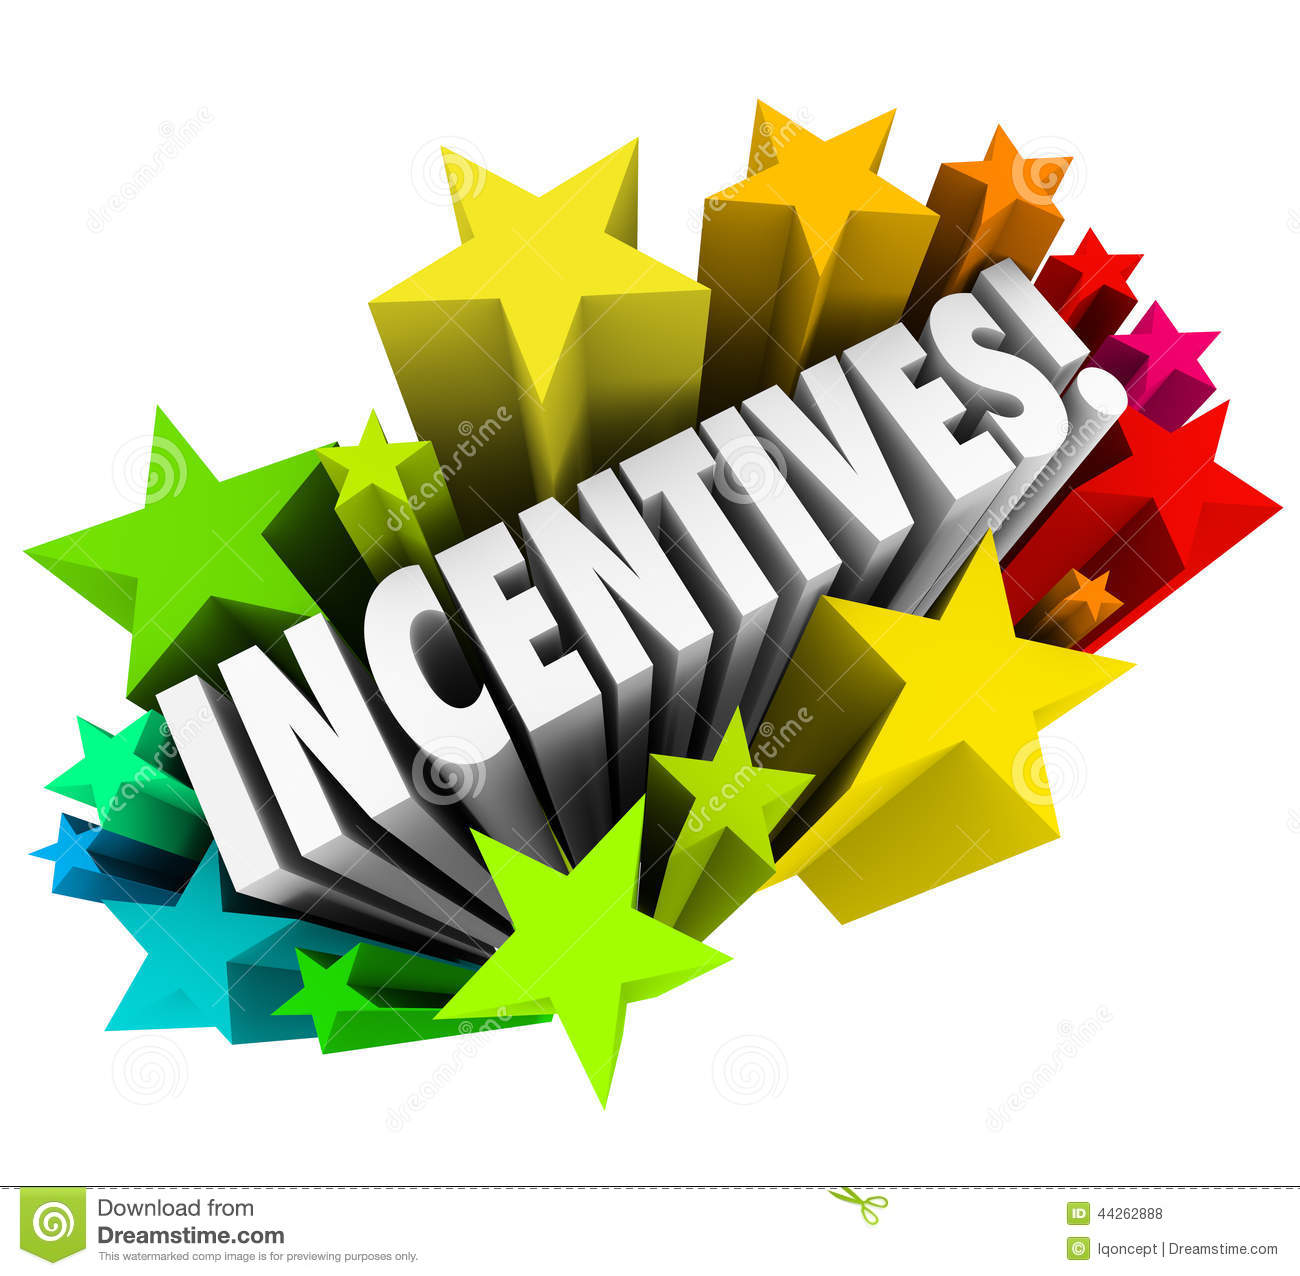 Incentives for employees station. Announcements clipart incentive